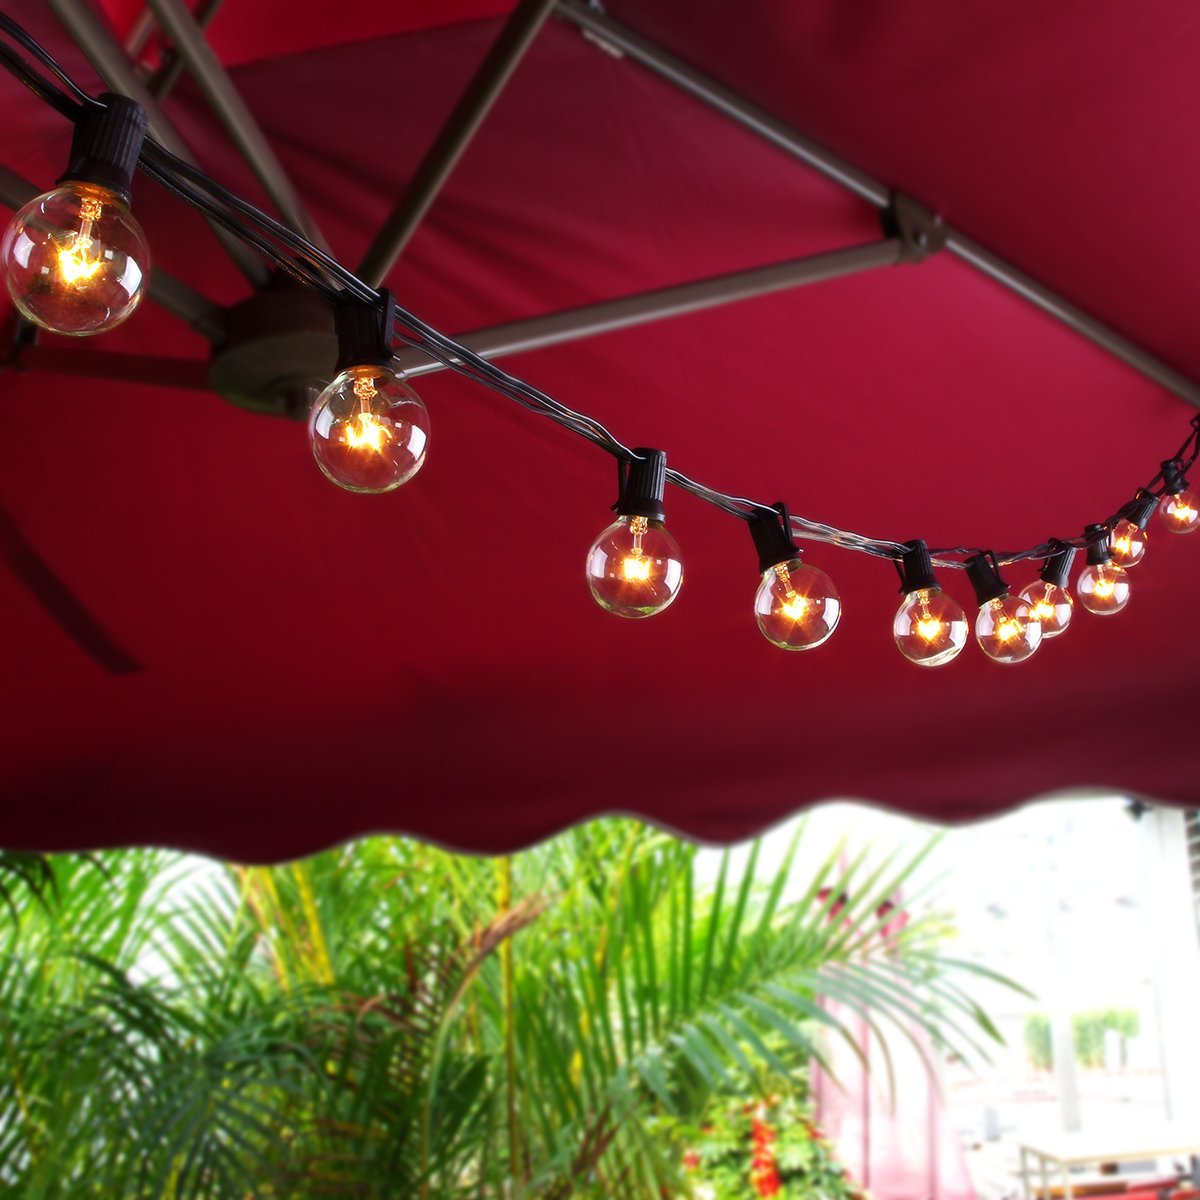 String Lights G40 : Zitrades Globe String Lights with G40 Bulbs UL Listed 25ft Outdoor String Lights eBay